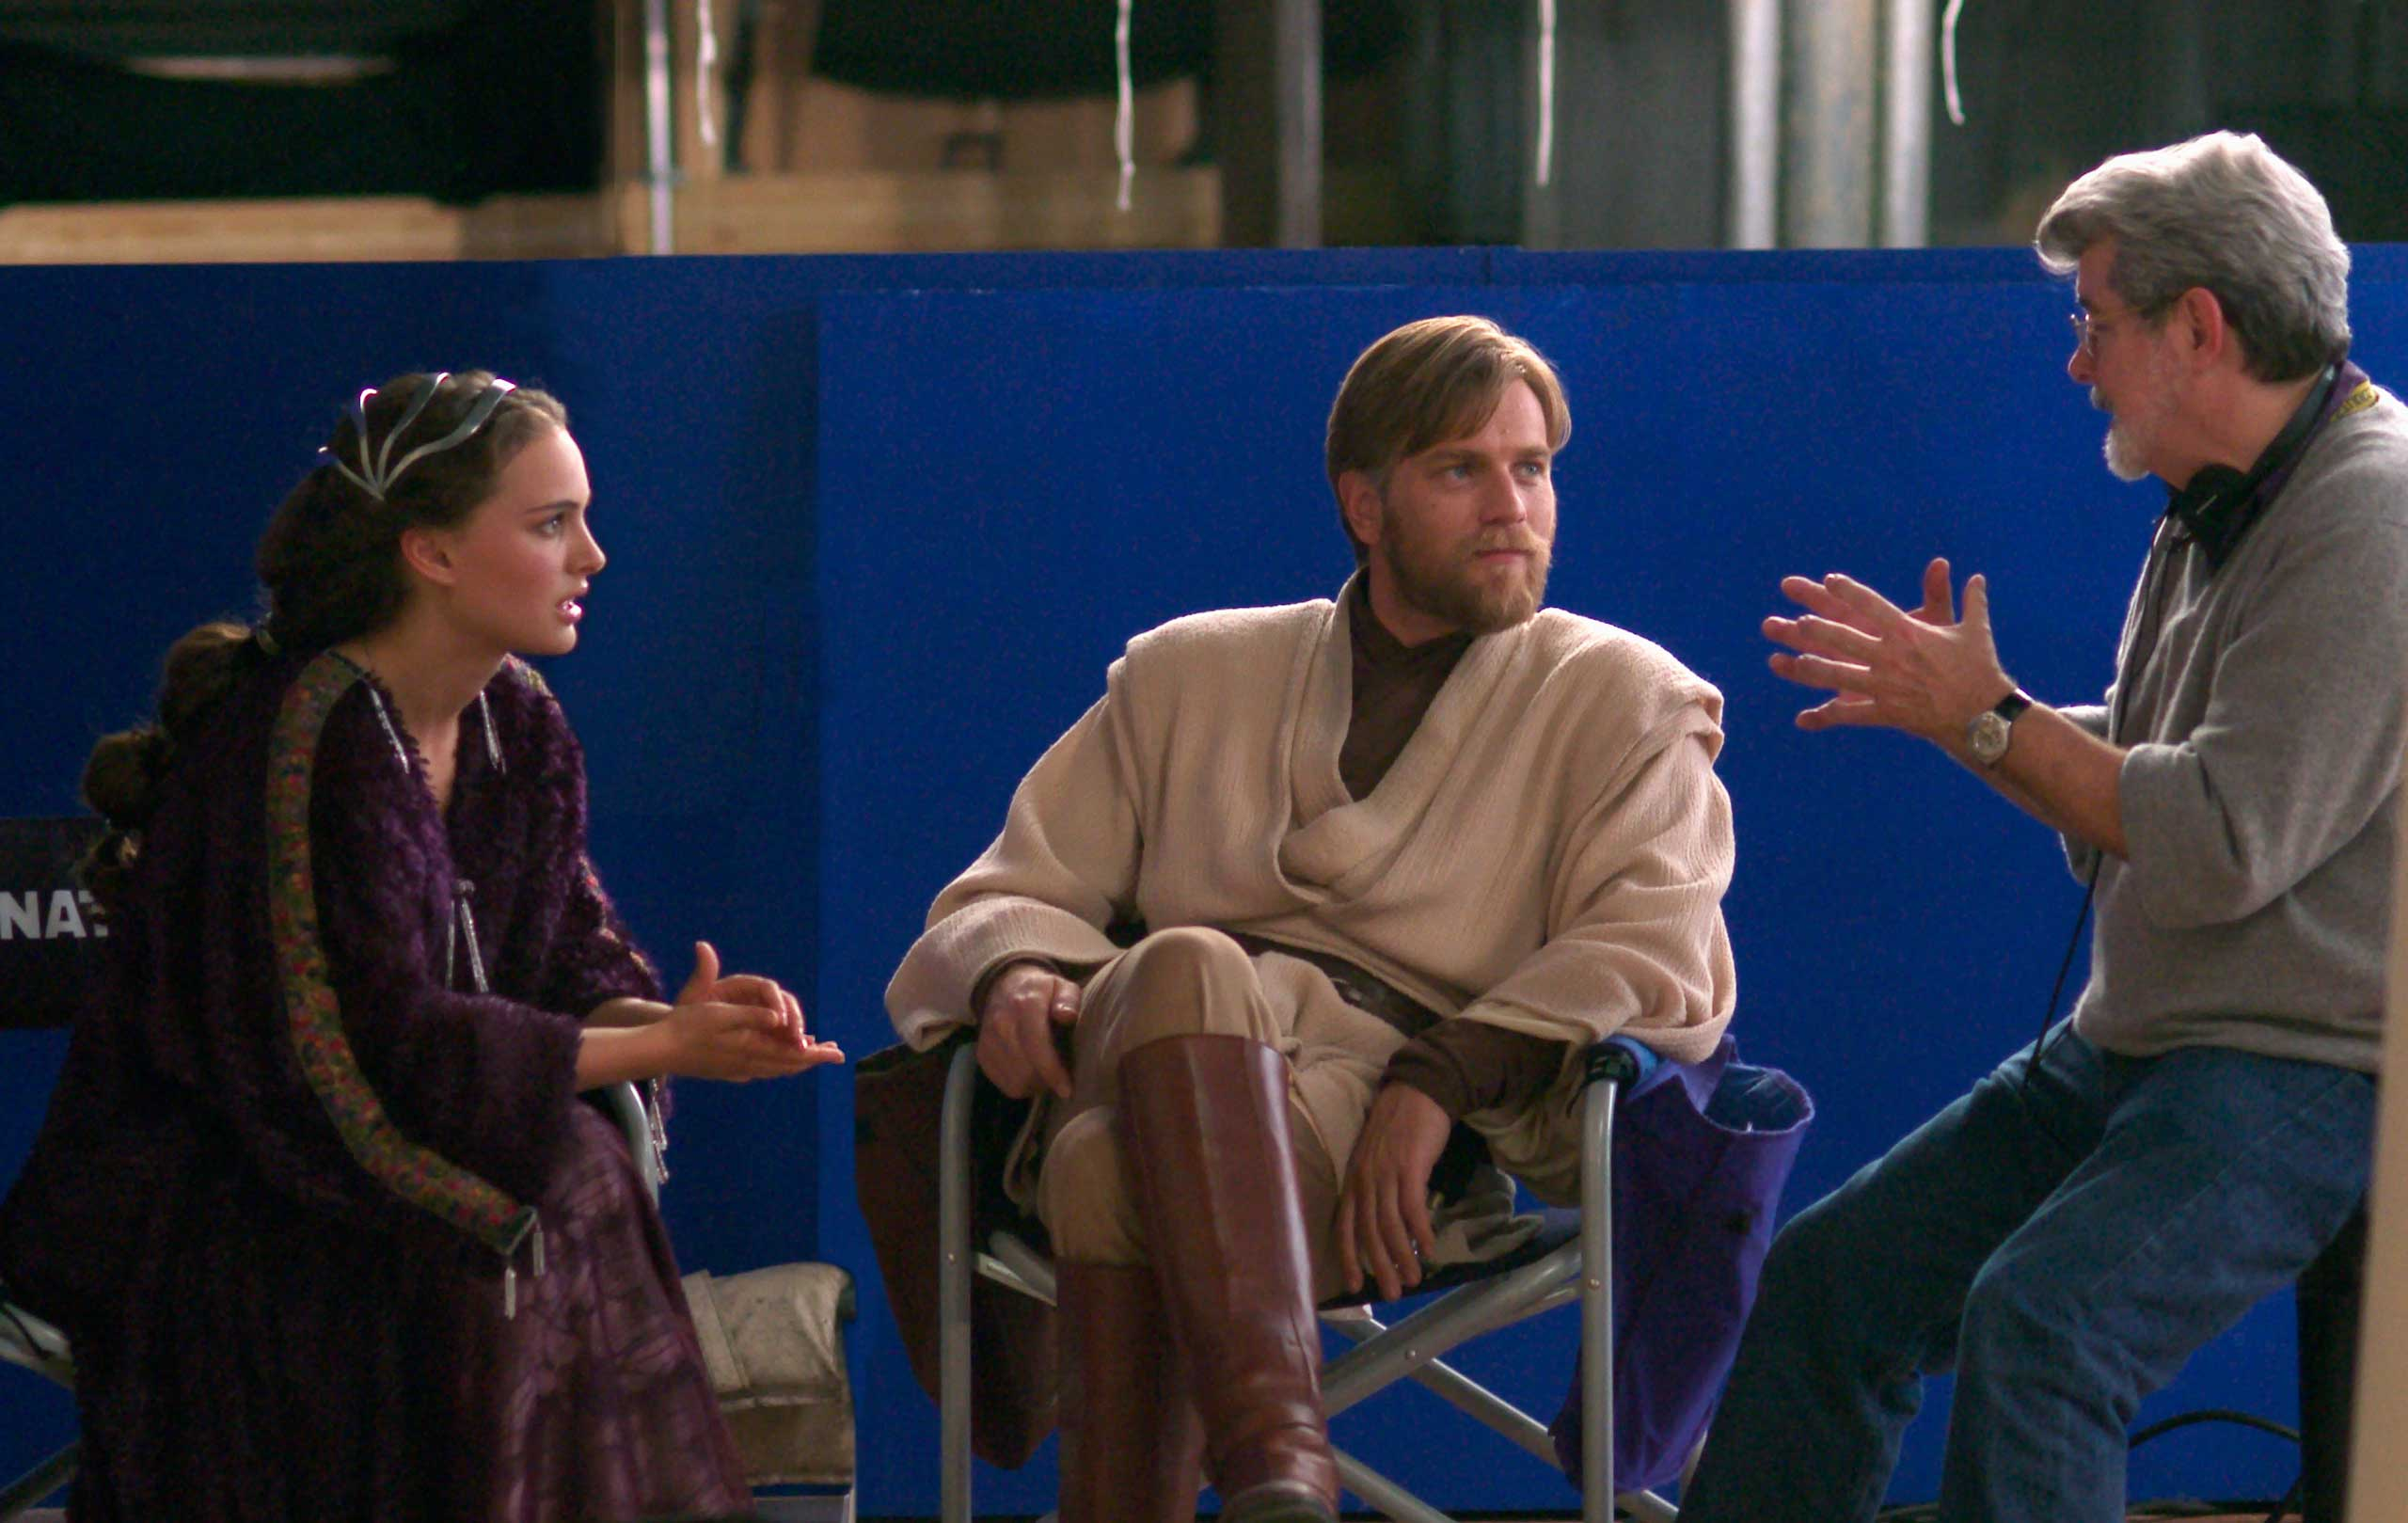 Natalie Portman (Queen Amidala) and Ewan McGregor (Obi-Wan Kenobi) listen to Lucas' directions on the set of <i>Star Wars: Episode III - Revenge of the Sith</i>.